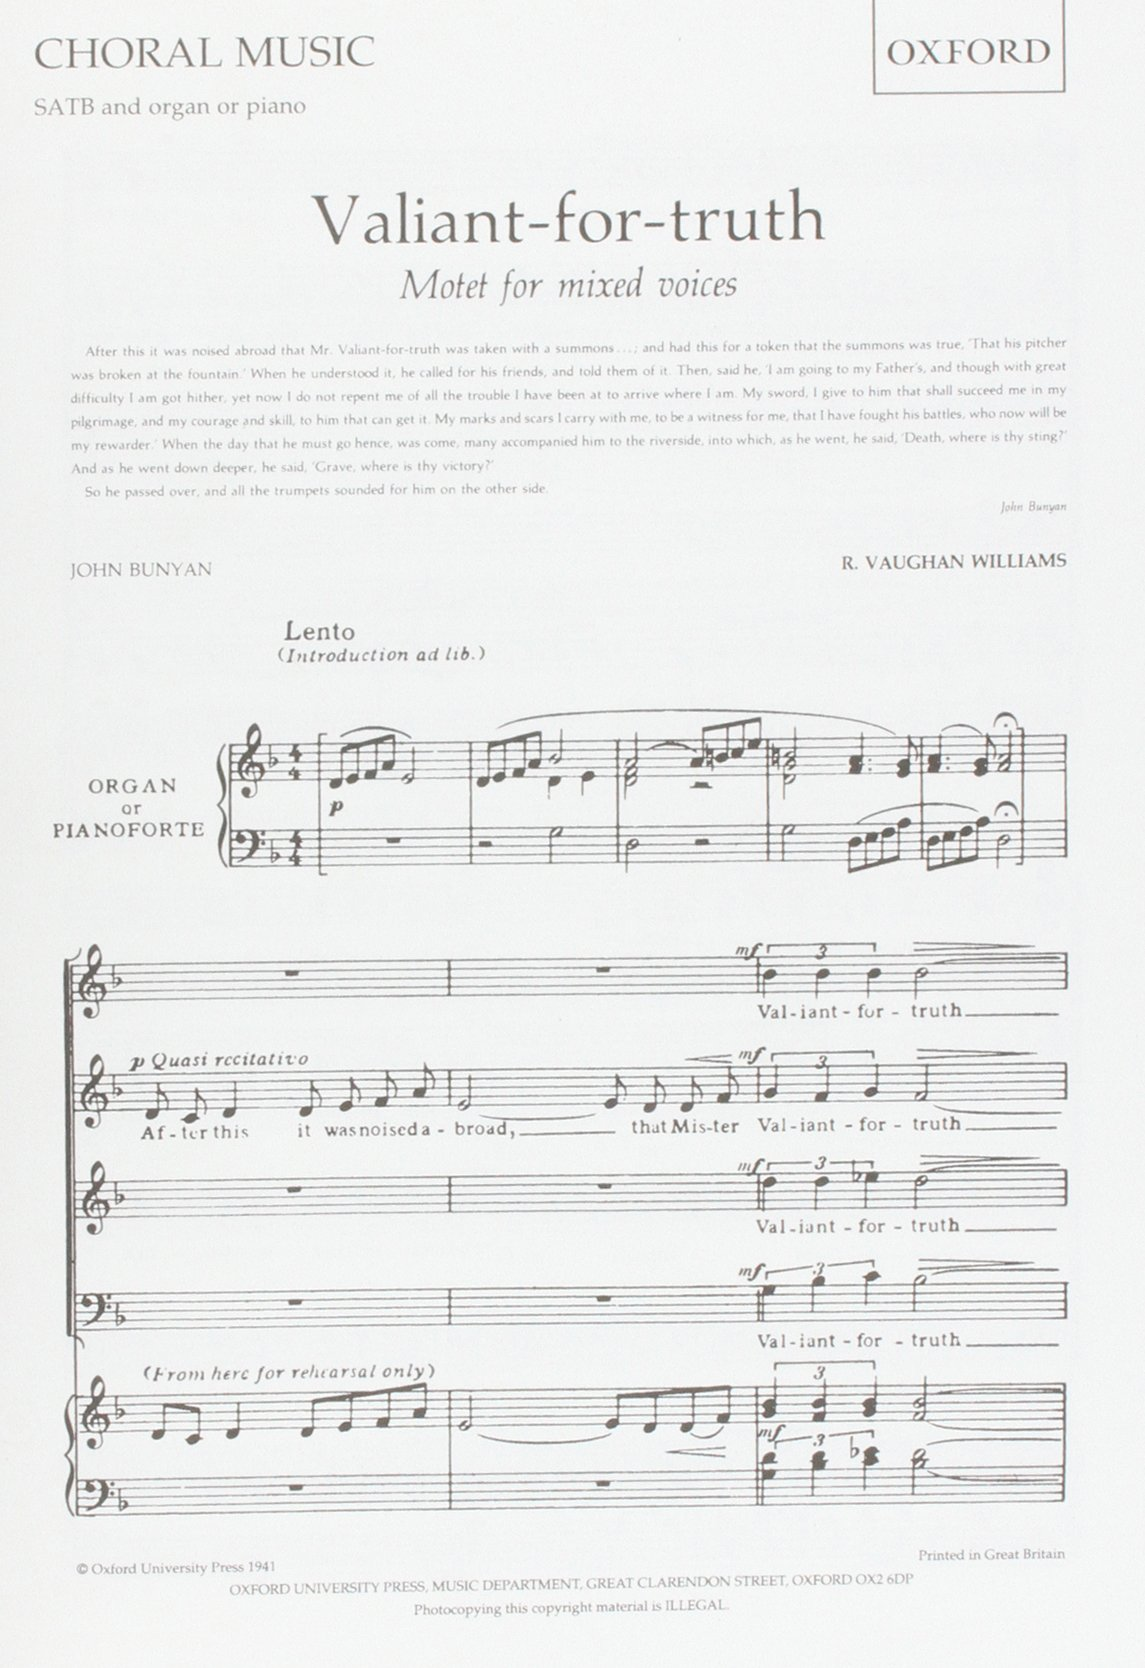 Valiant-for-truth: Vocal score